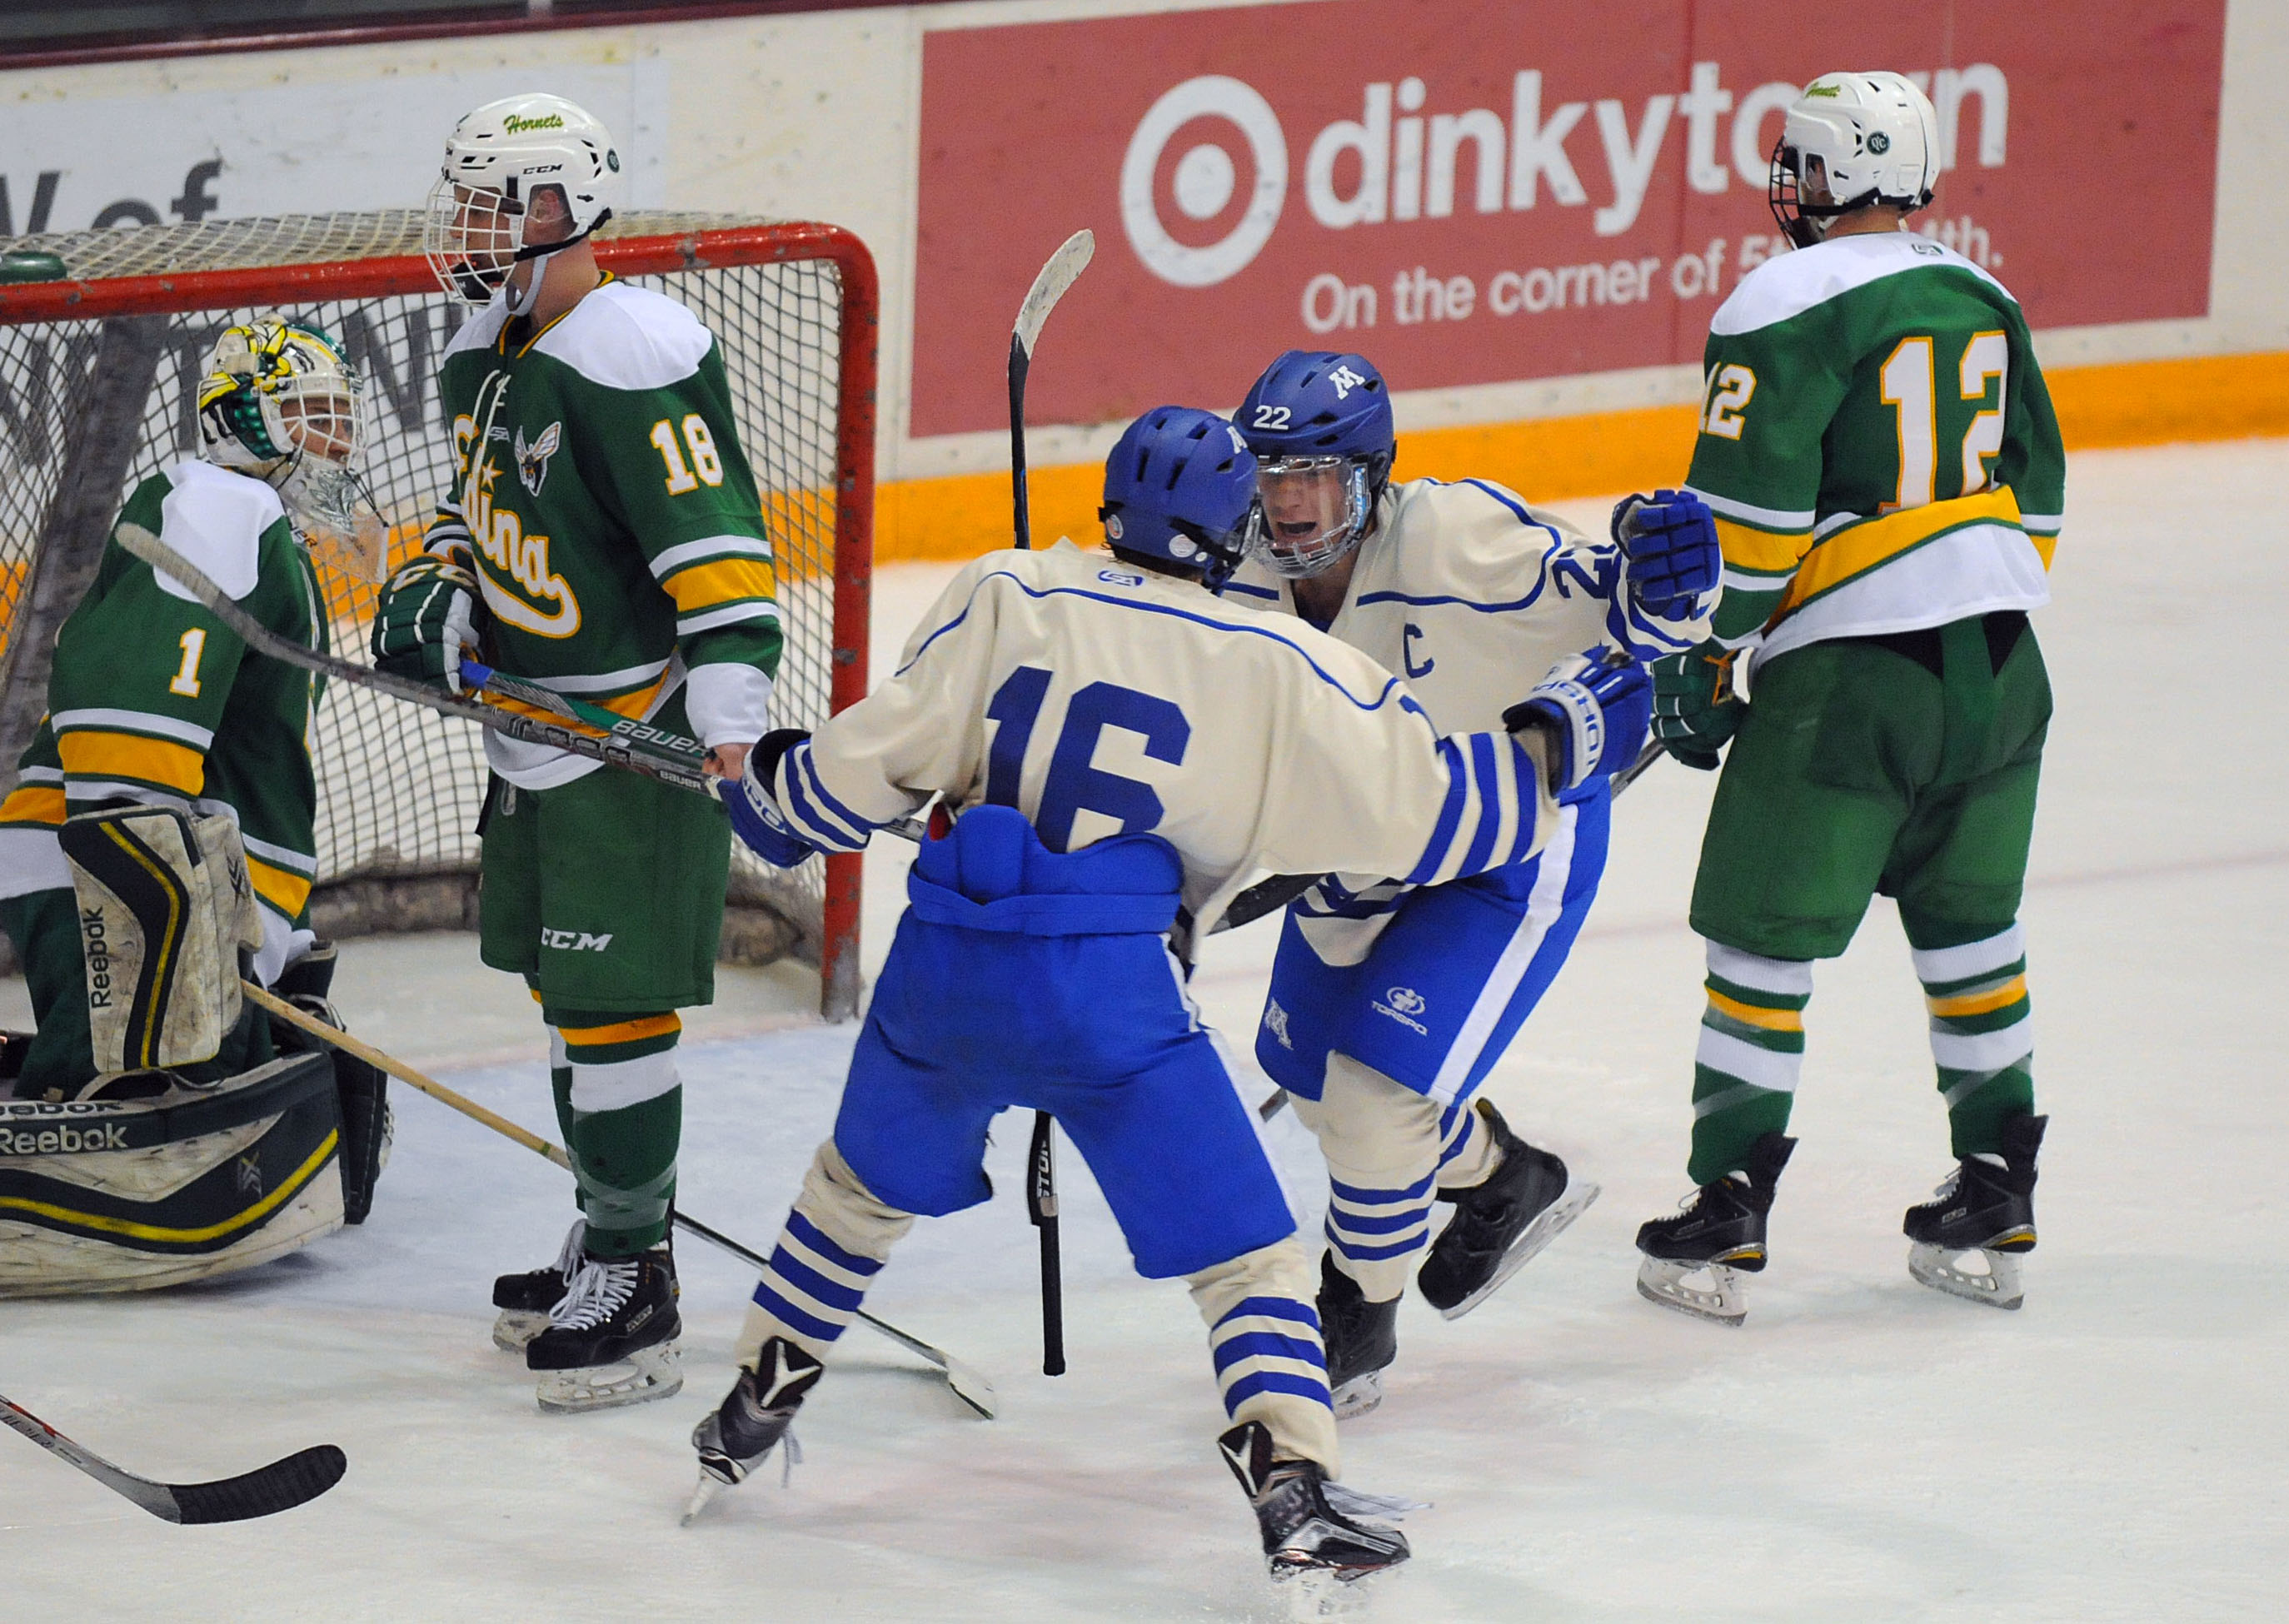 Edina midget hockey